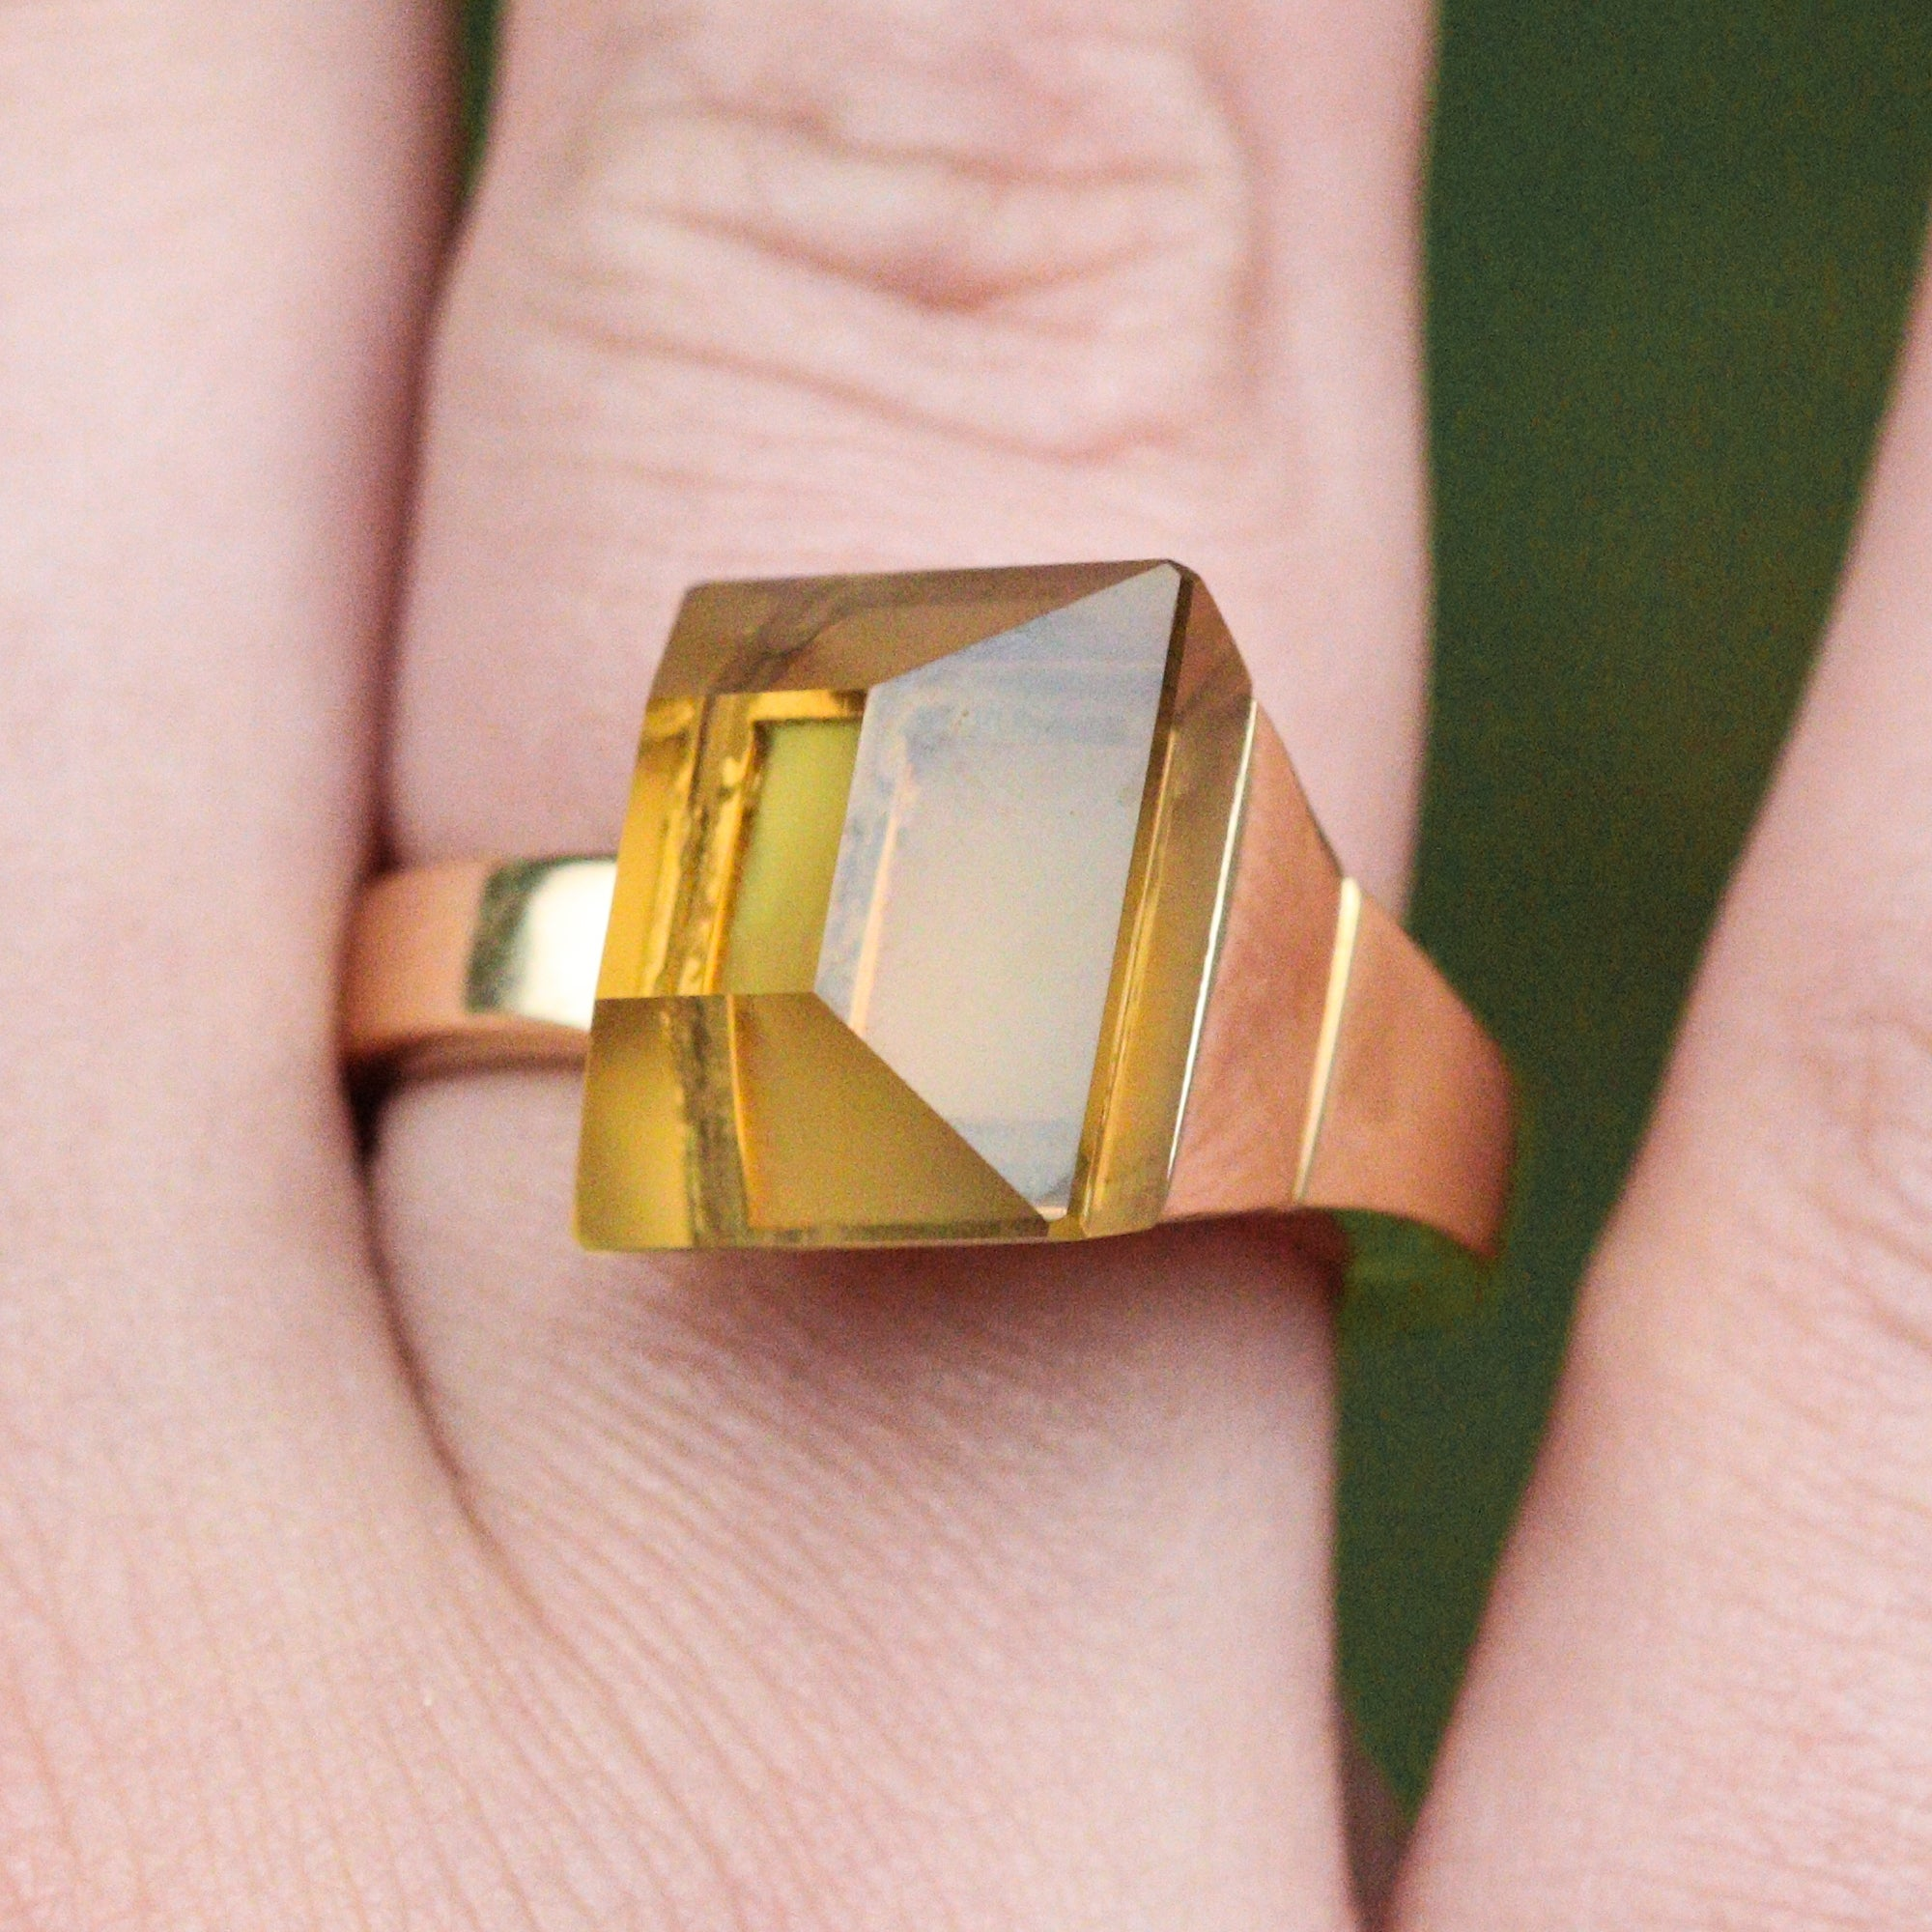 18 Karat Yellow Gold Gucci Chiodo Ring with Citrine For Sale at 1stdibs